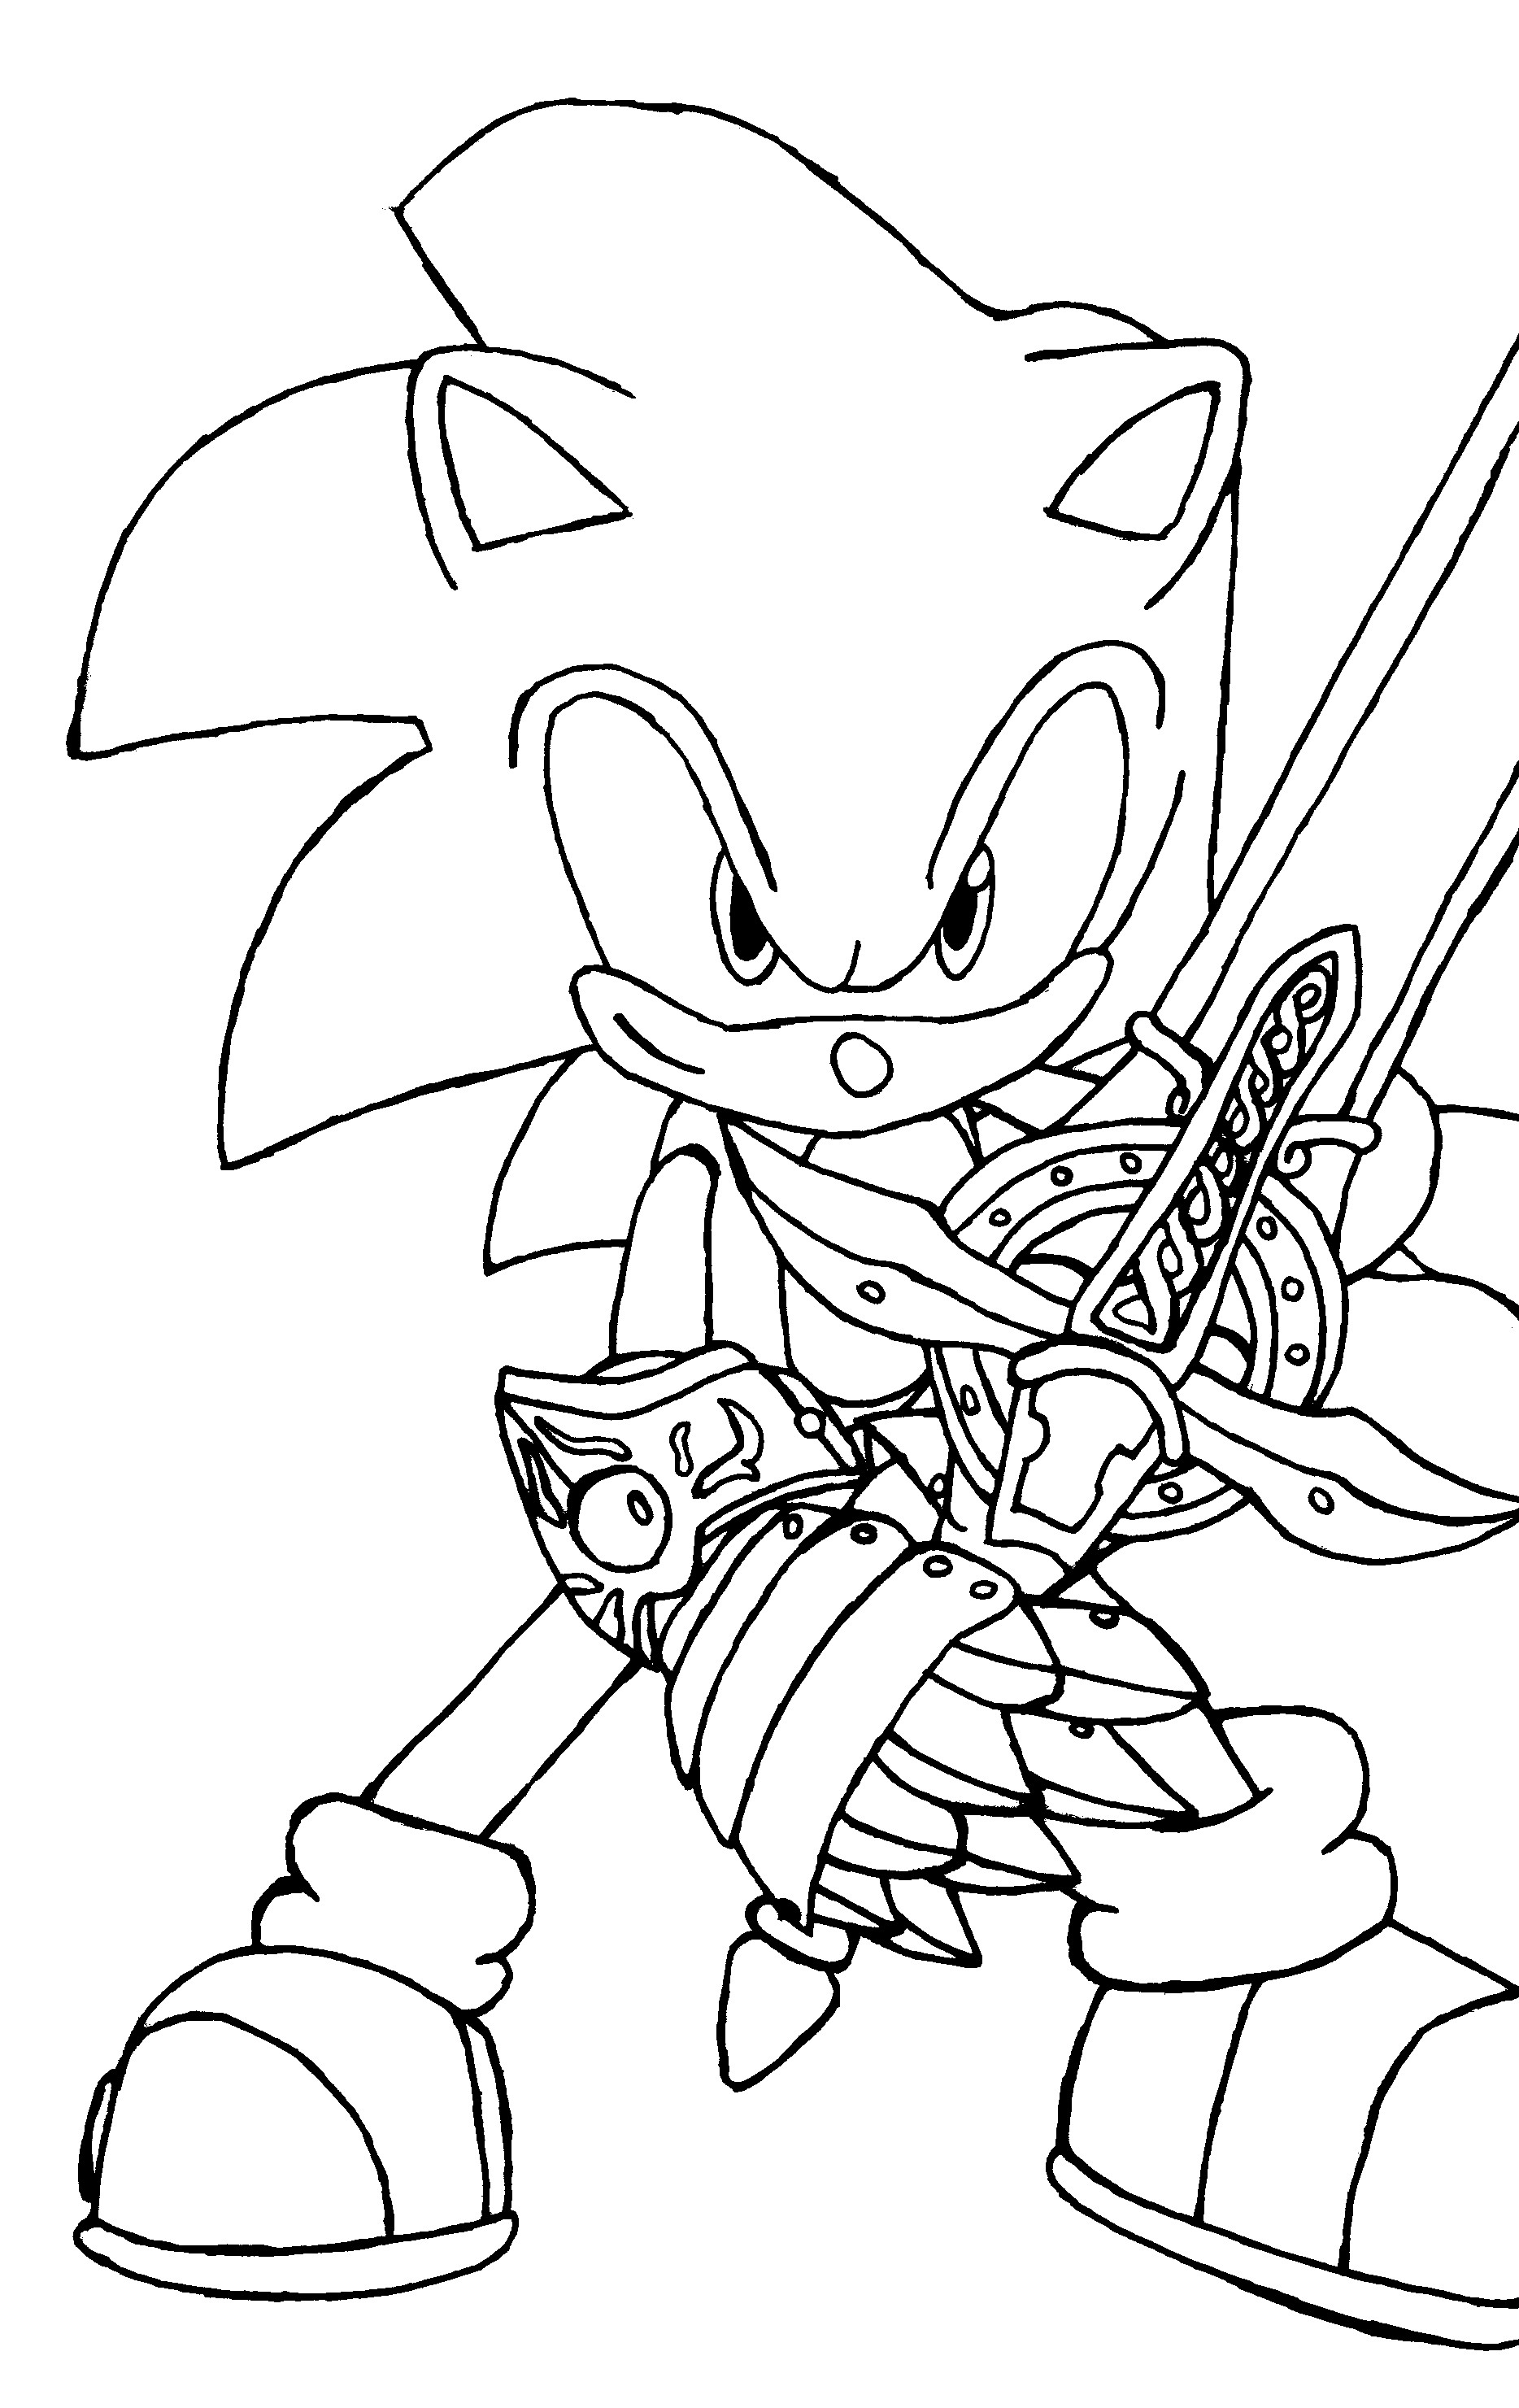 sonic coloring page printable sonic coloring pages for kids cool2bkids page sonic coloring